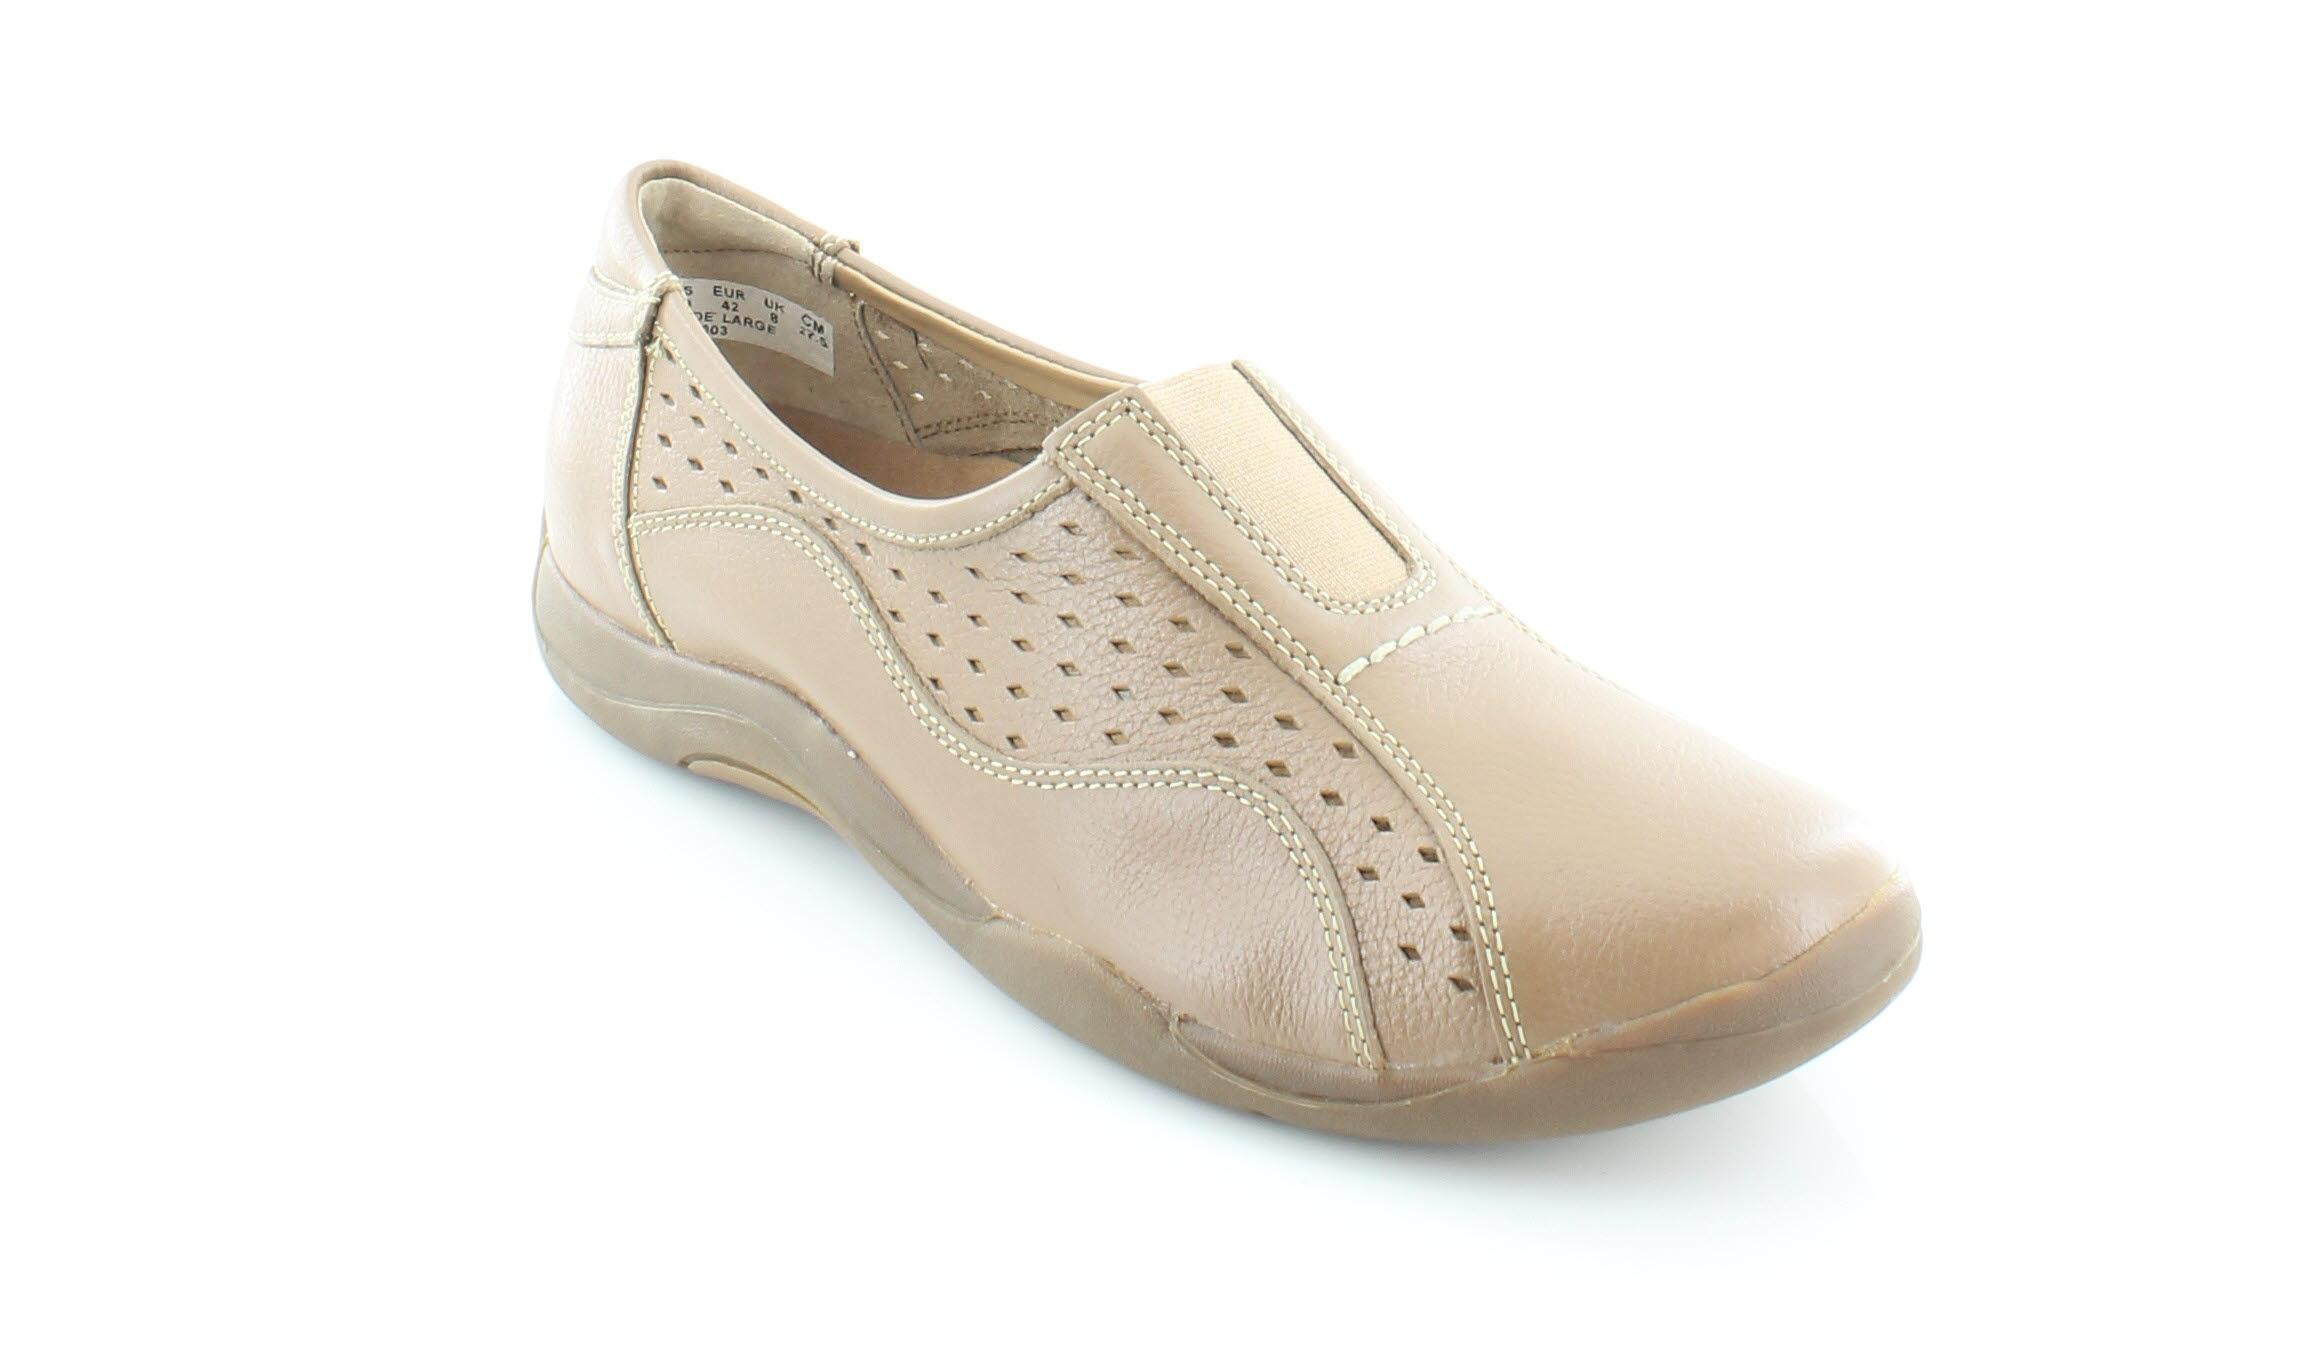 Hush Puppies Ease Women's Flats & Oxfords by